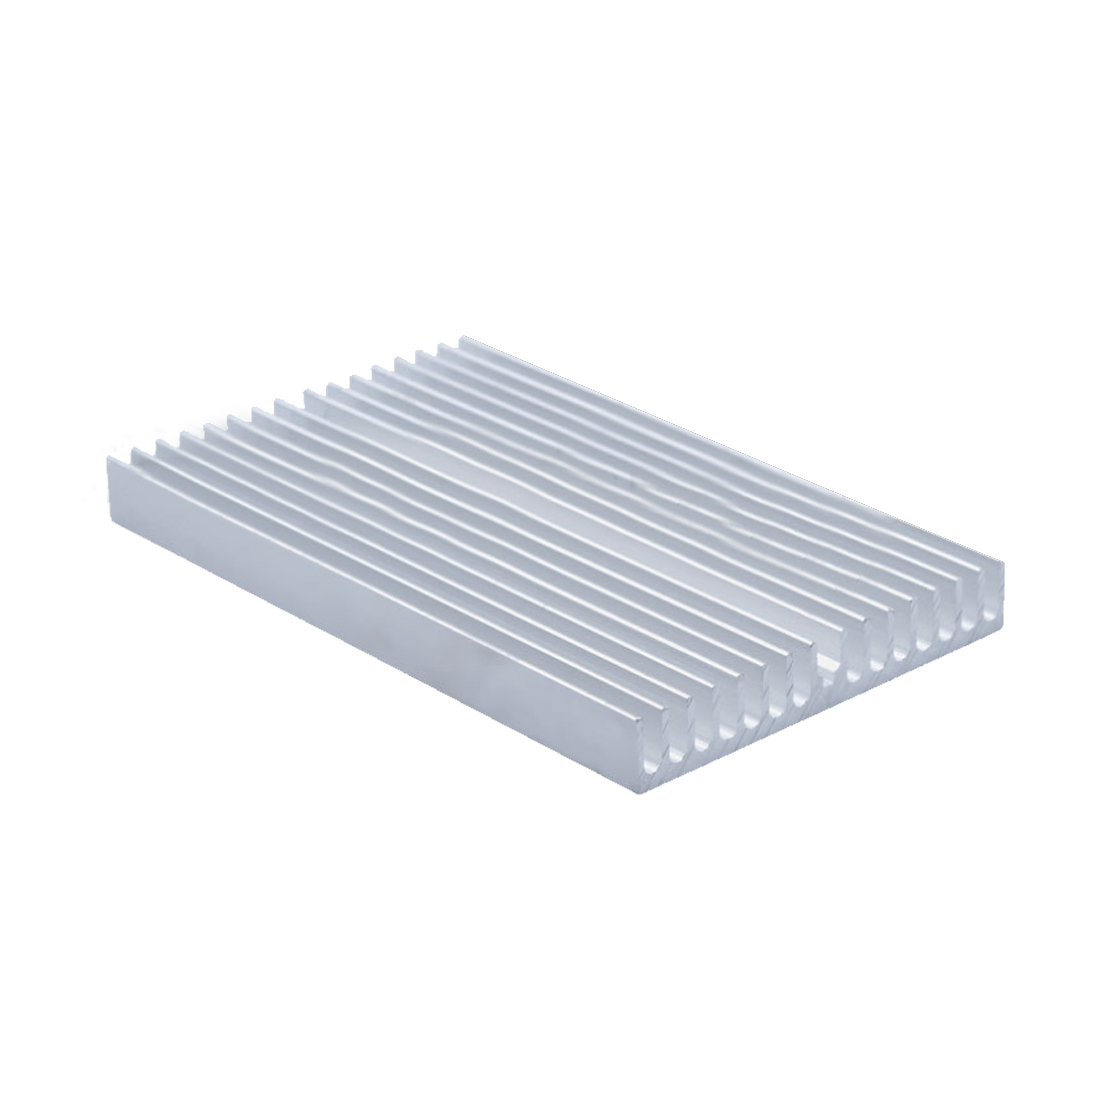 NOYOKERE Protable 100*60*10mm DIY Cooler Aluminum Heatsink Grille Shape Radiator Heat Sink Chip for IC Power Transistor 20pcs lot aluminum heatsink 14 14 6mm electronic chip radiator cooler w thermal double sided adhesive tape for ic 3d printer